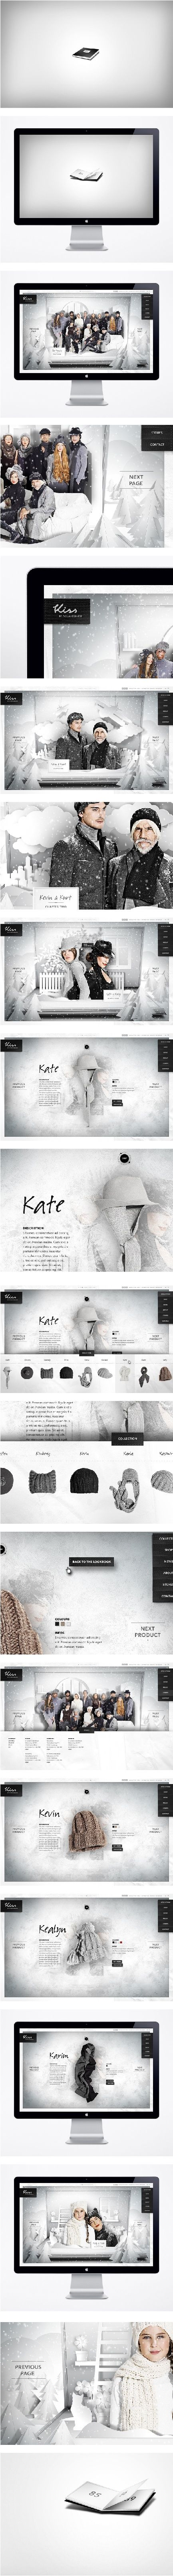 Website / Kiss by Fiona Bennett  Art Direction, Branding, Web Design: